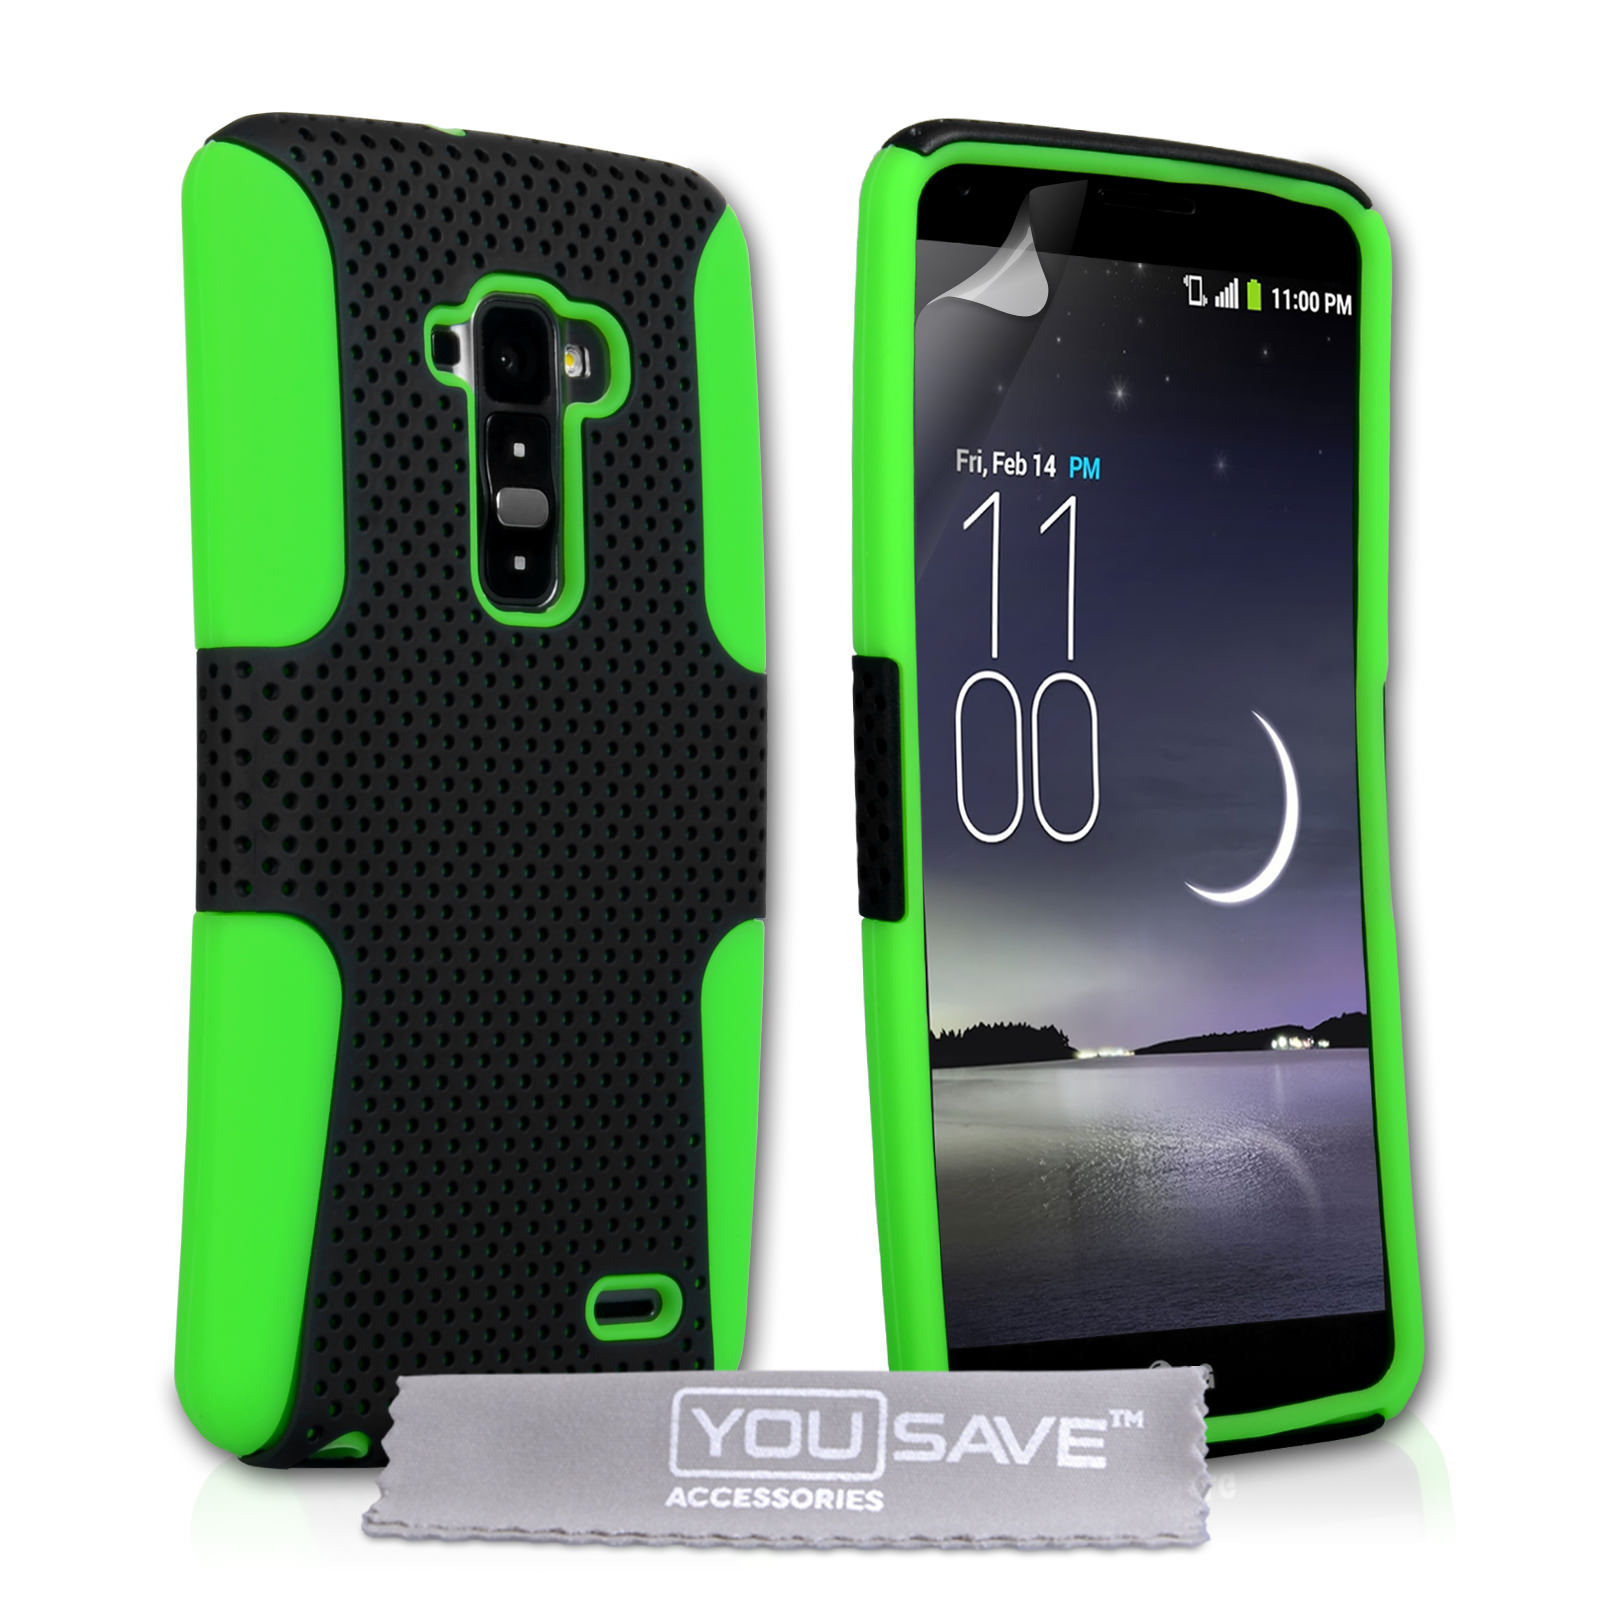 YouSave LG G Flex Tough Mesh Combo Silicone Case - Green-Black